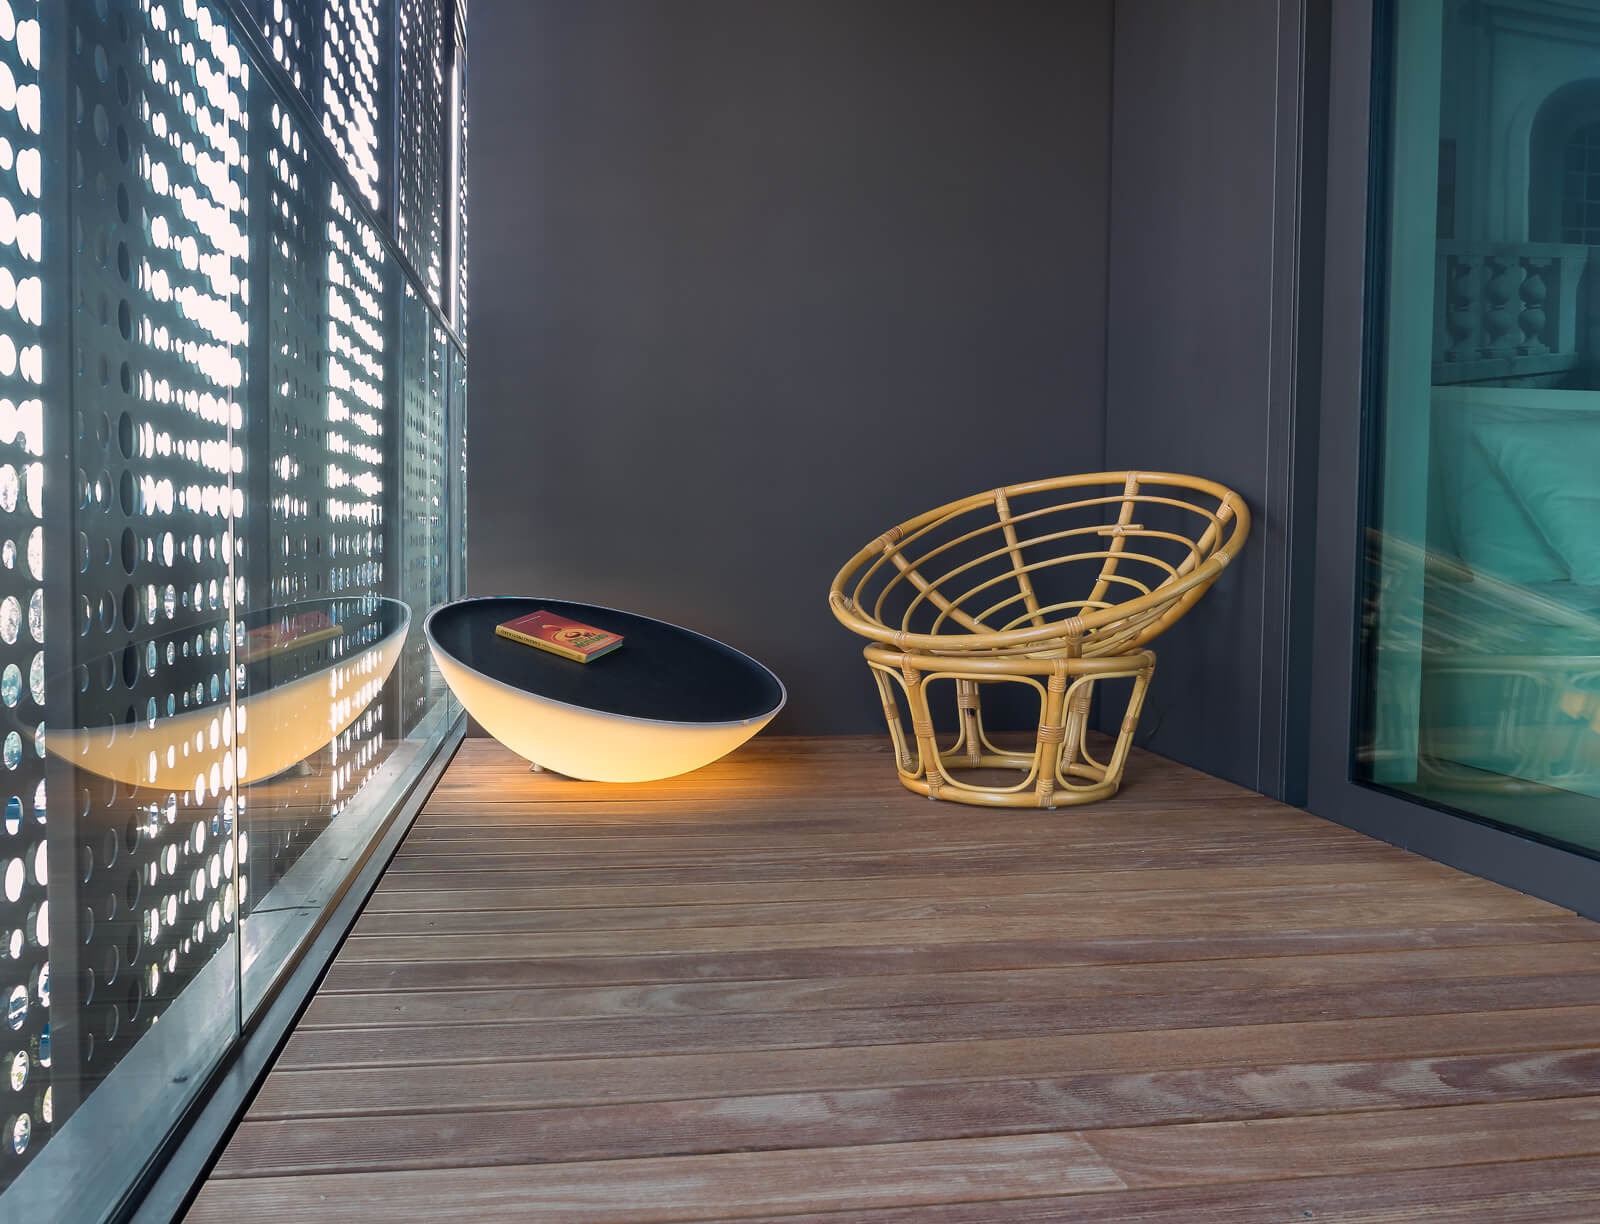 On the bedroom patio space, we see this thoughtful combination of a wicker chair and hemispherical table lit from within.